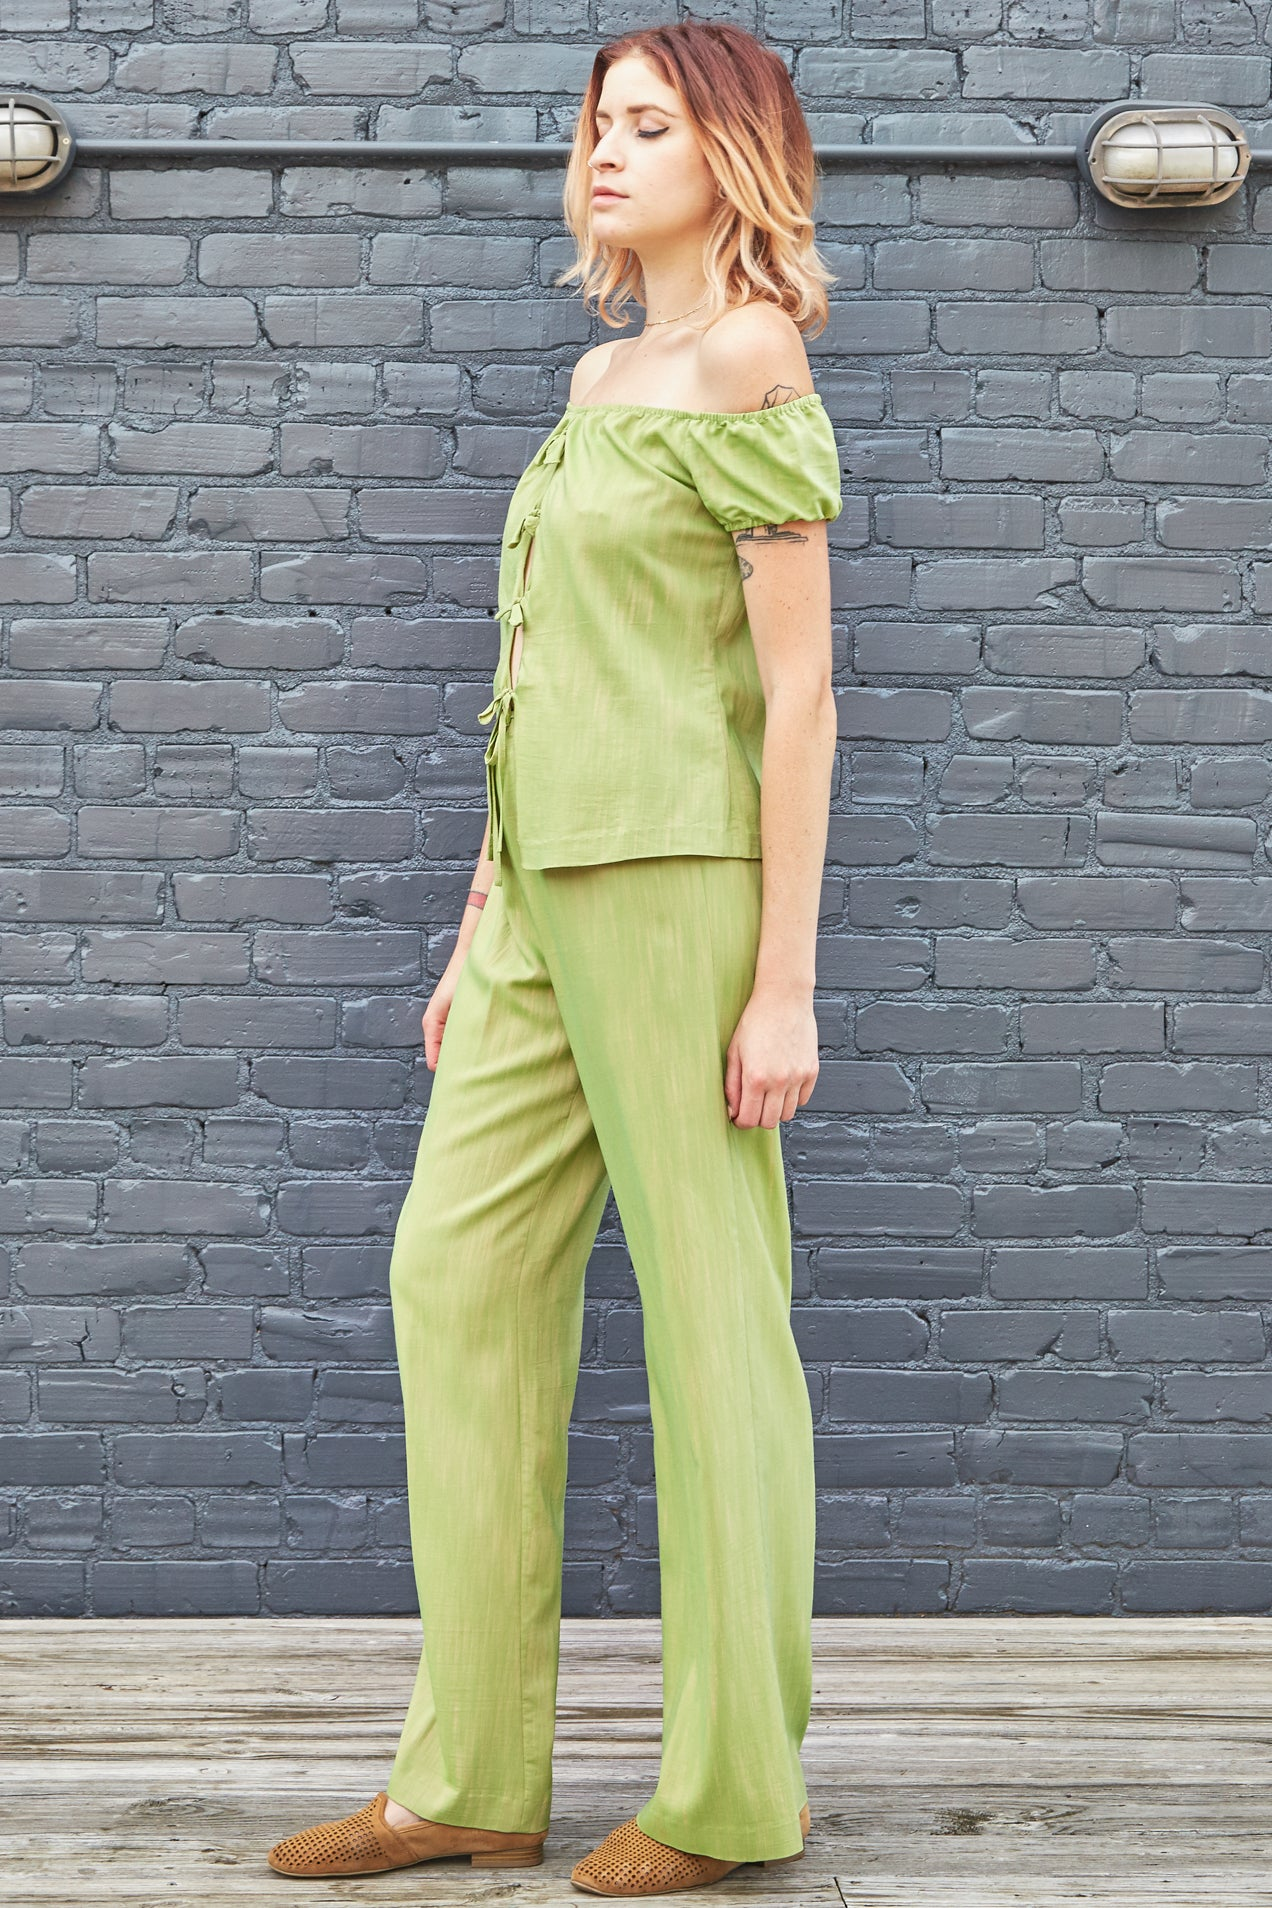 90s Vivienne Tam Color Shift Palazzo Set